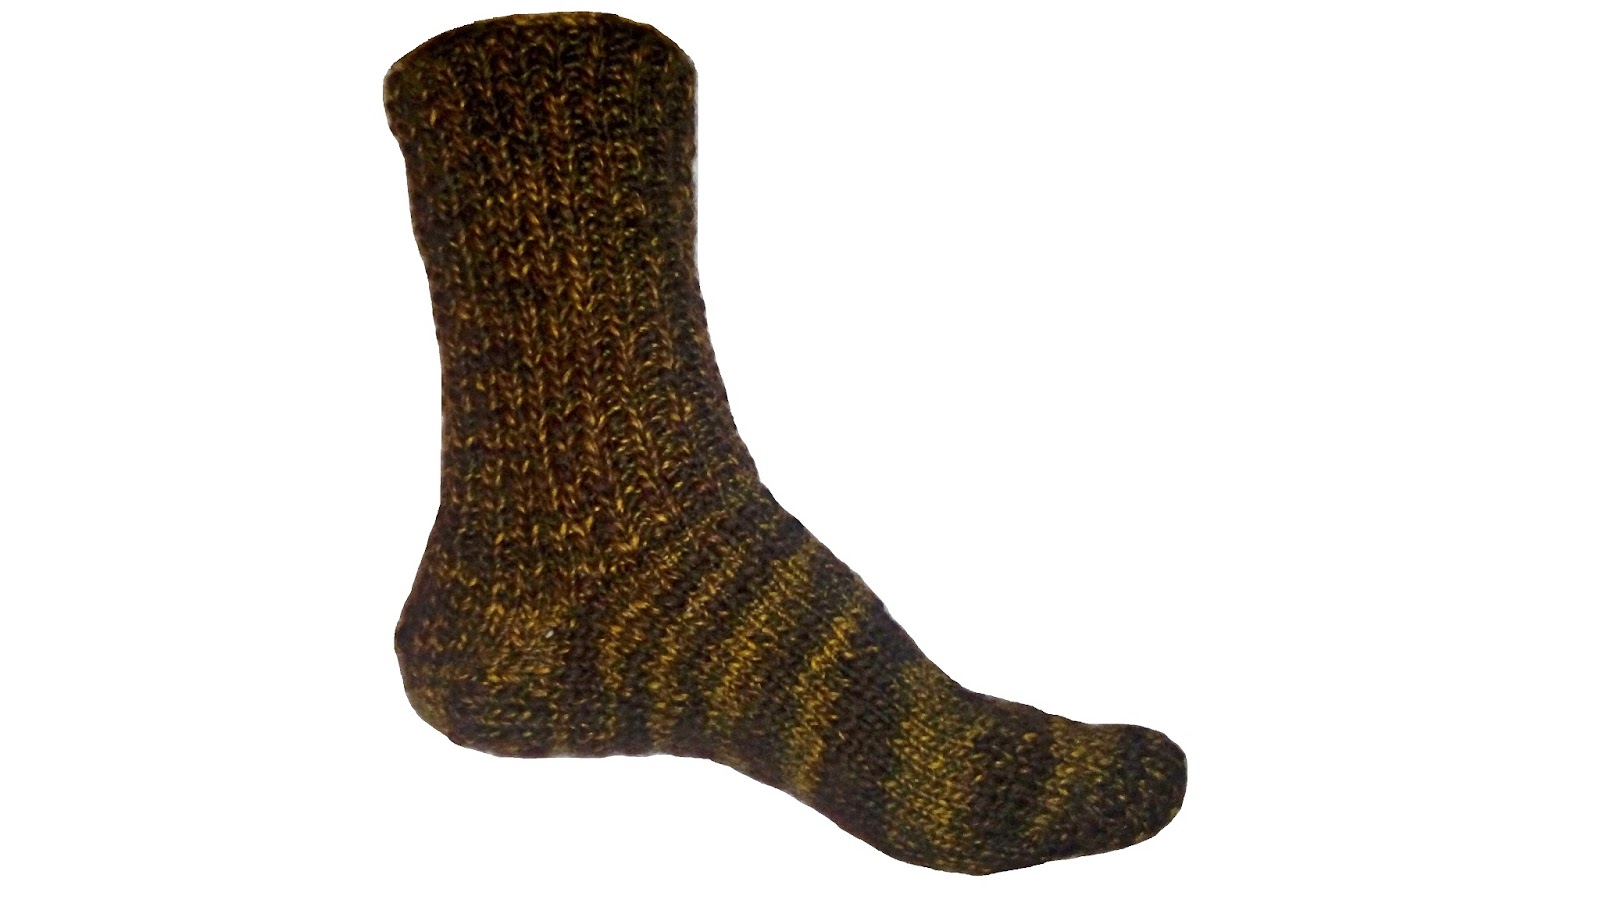 2 toe-up socks